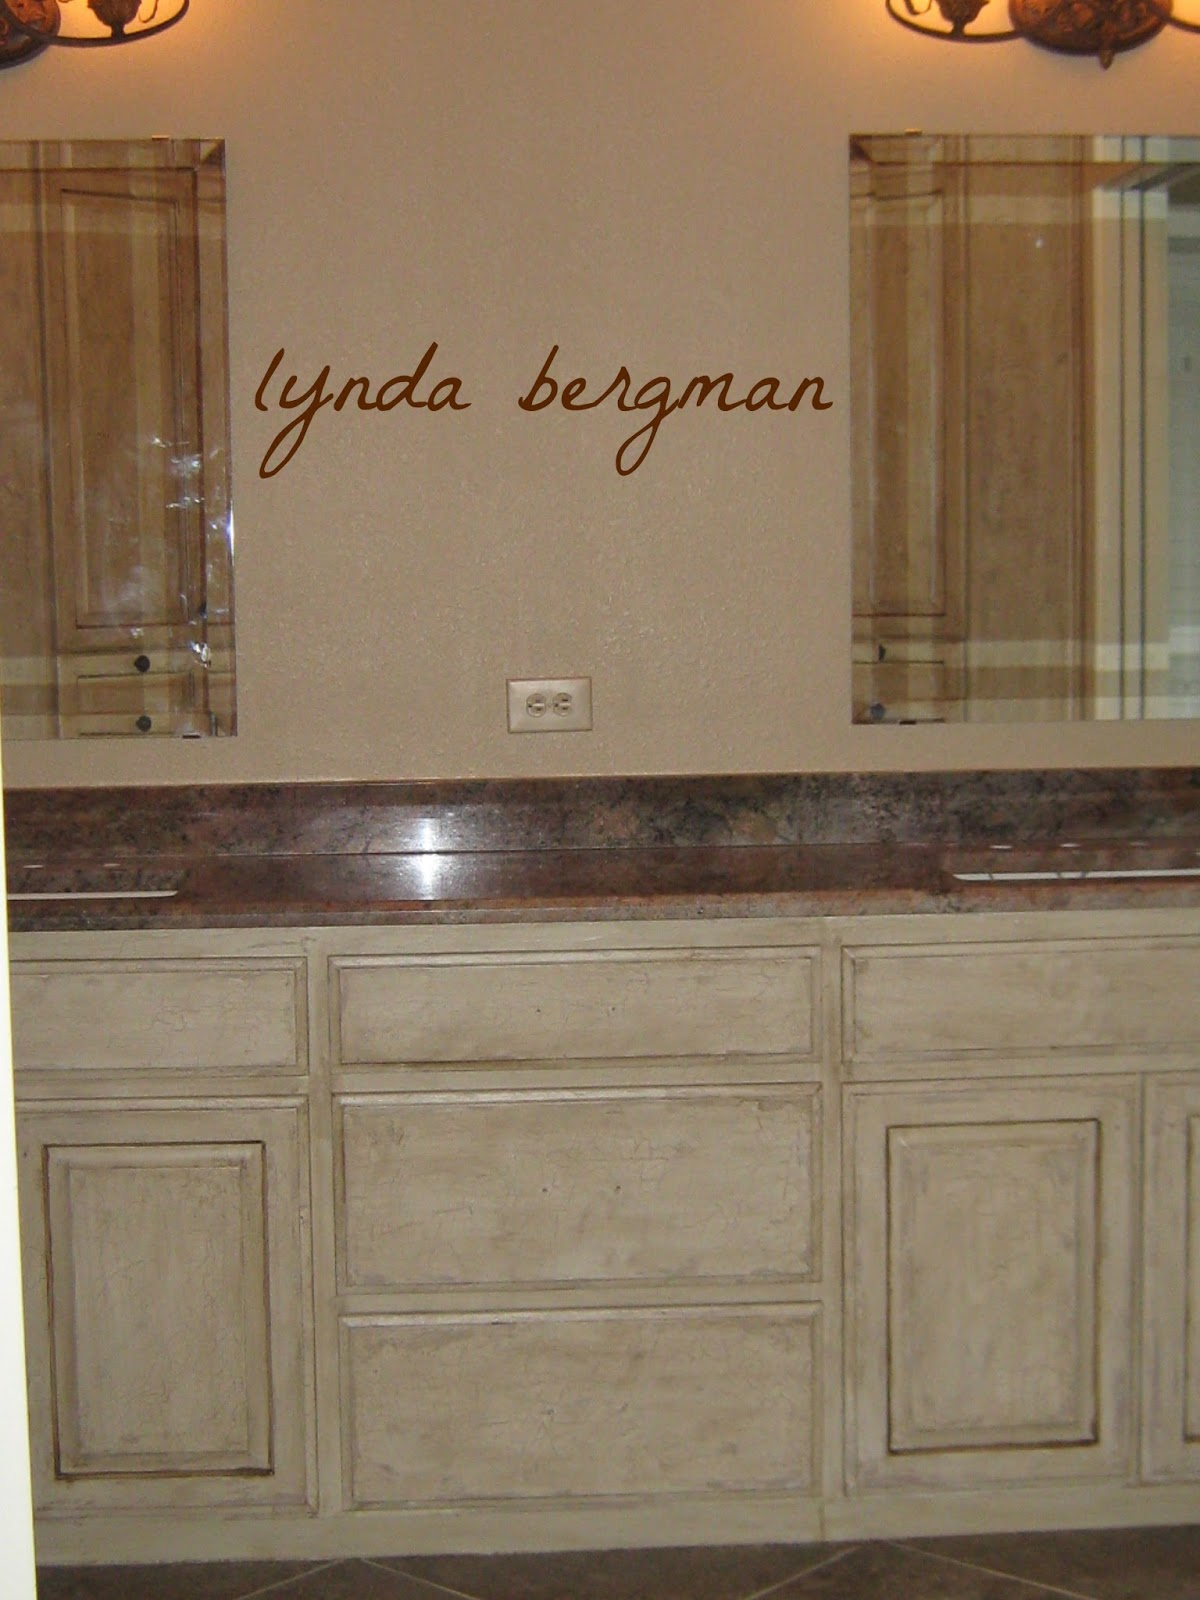 LYNDA BERGMAN DECORATIVE ARTISAN DISTRESSED FAUX FINISH ON BATHROOM CABINETS